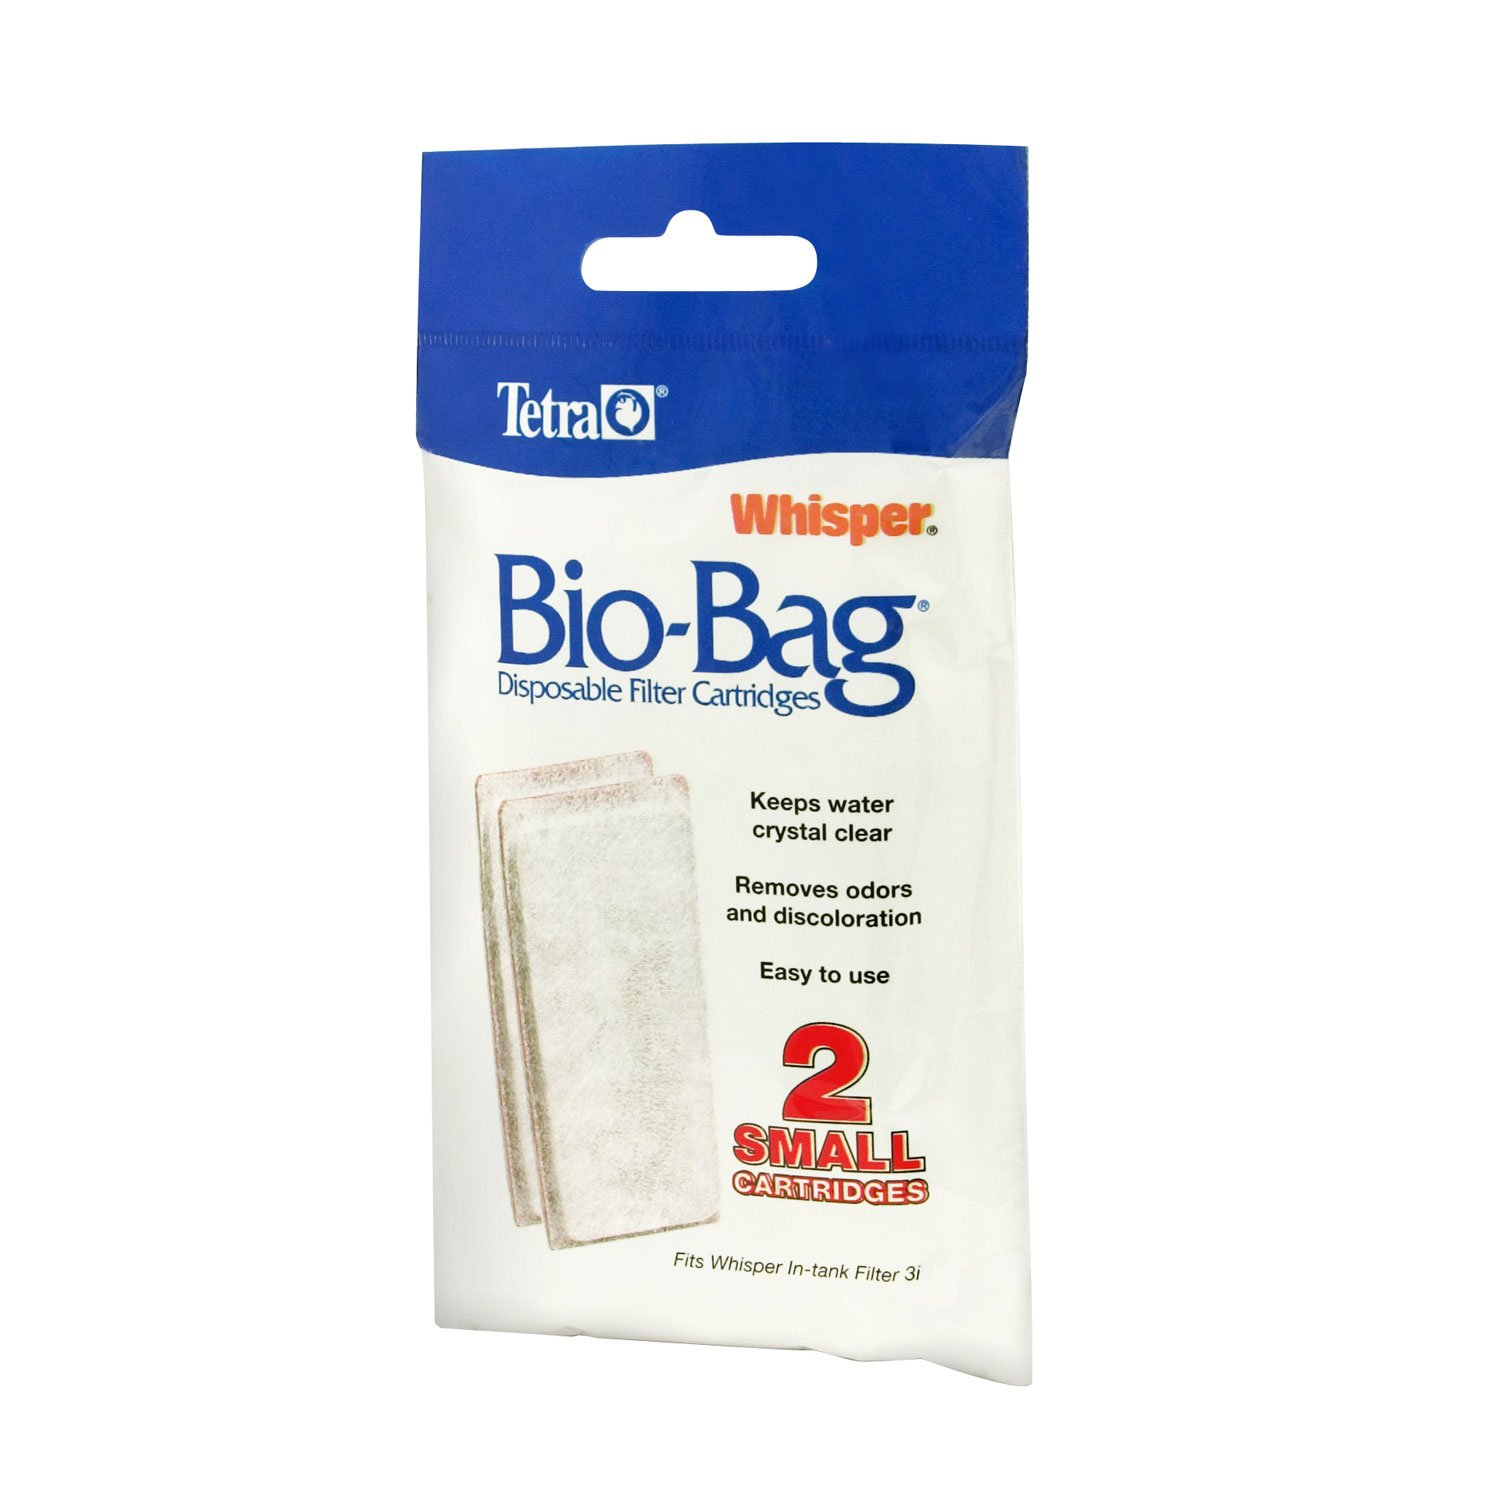 Tetra Whisper Bio Bag Disposable Filter Cartridges Small Pack Of 2 Petco